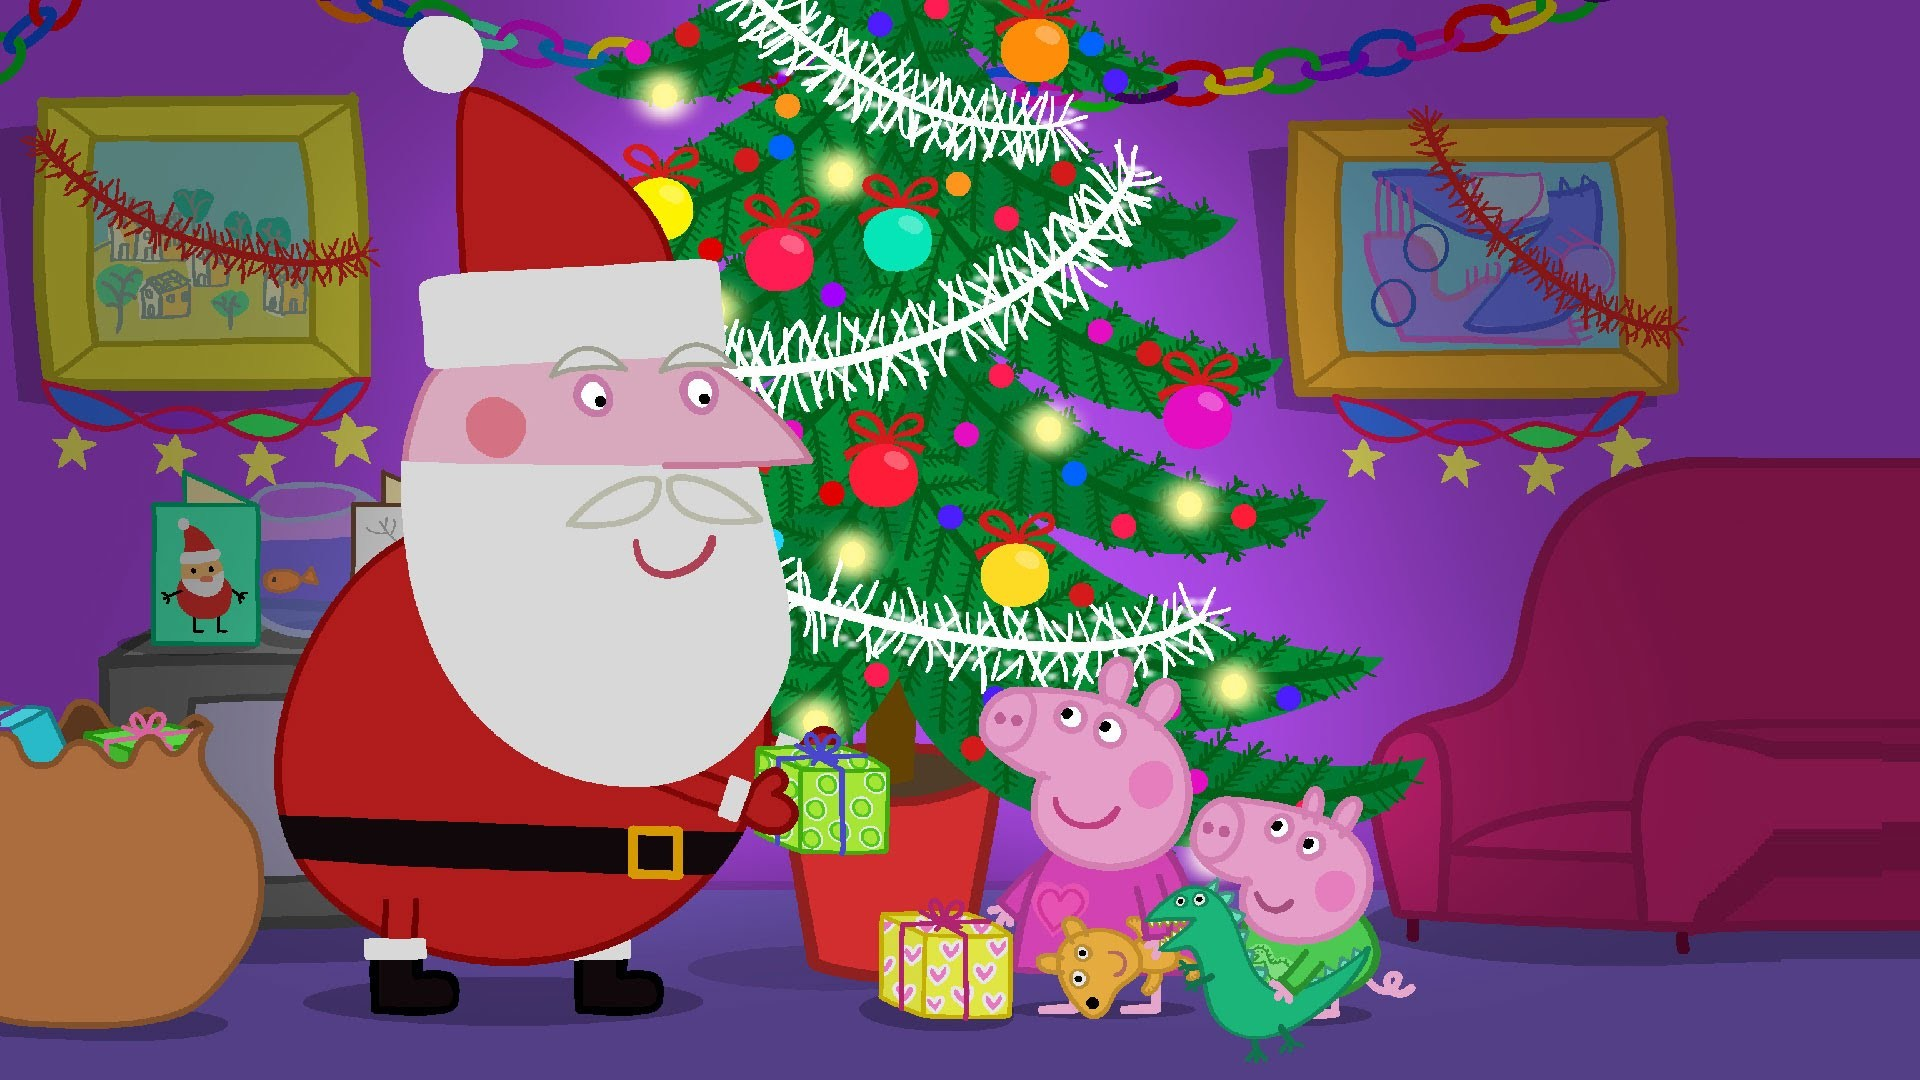 Res: 1920x1080, Peppa Pig Christmas Commercials Toys / Peppa Navidad Comerciales Juguetes -  YouTube